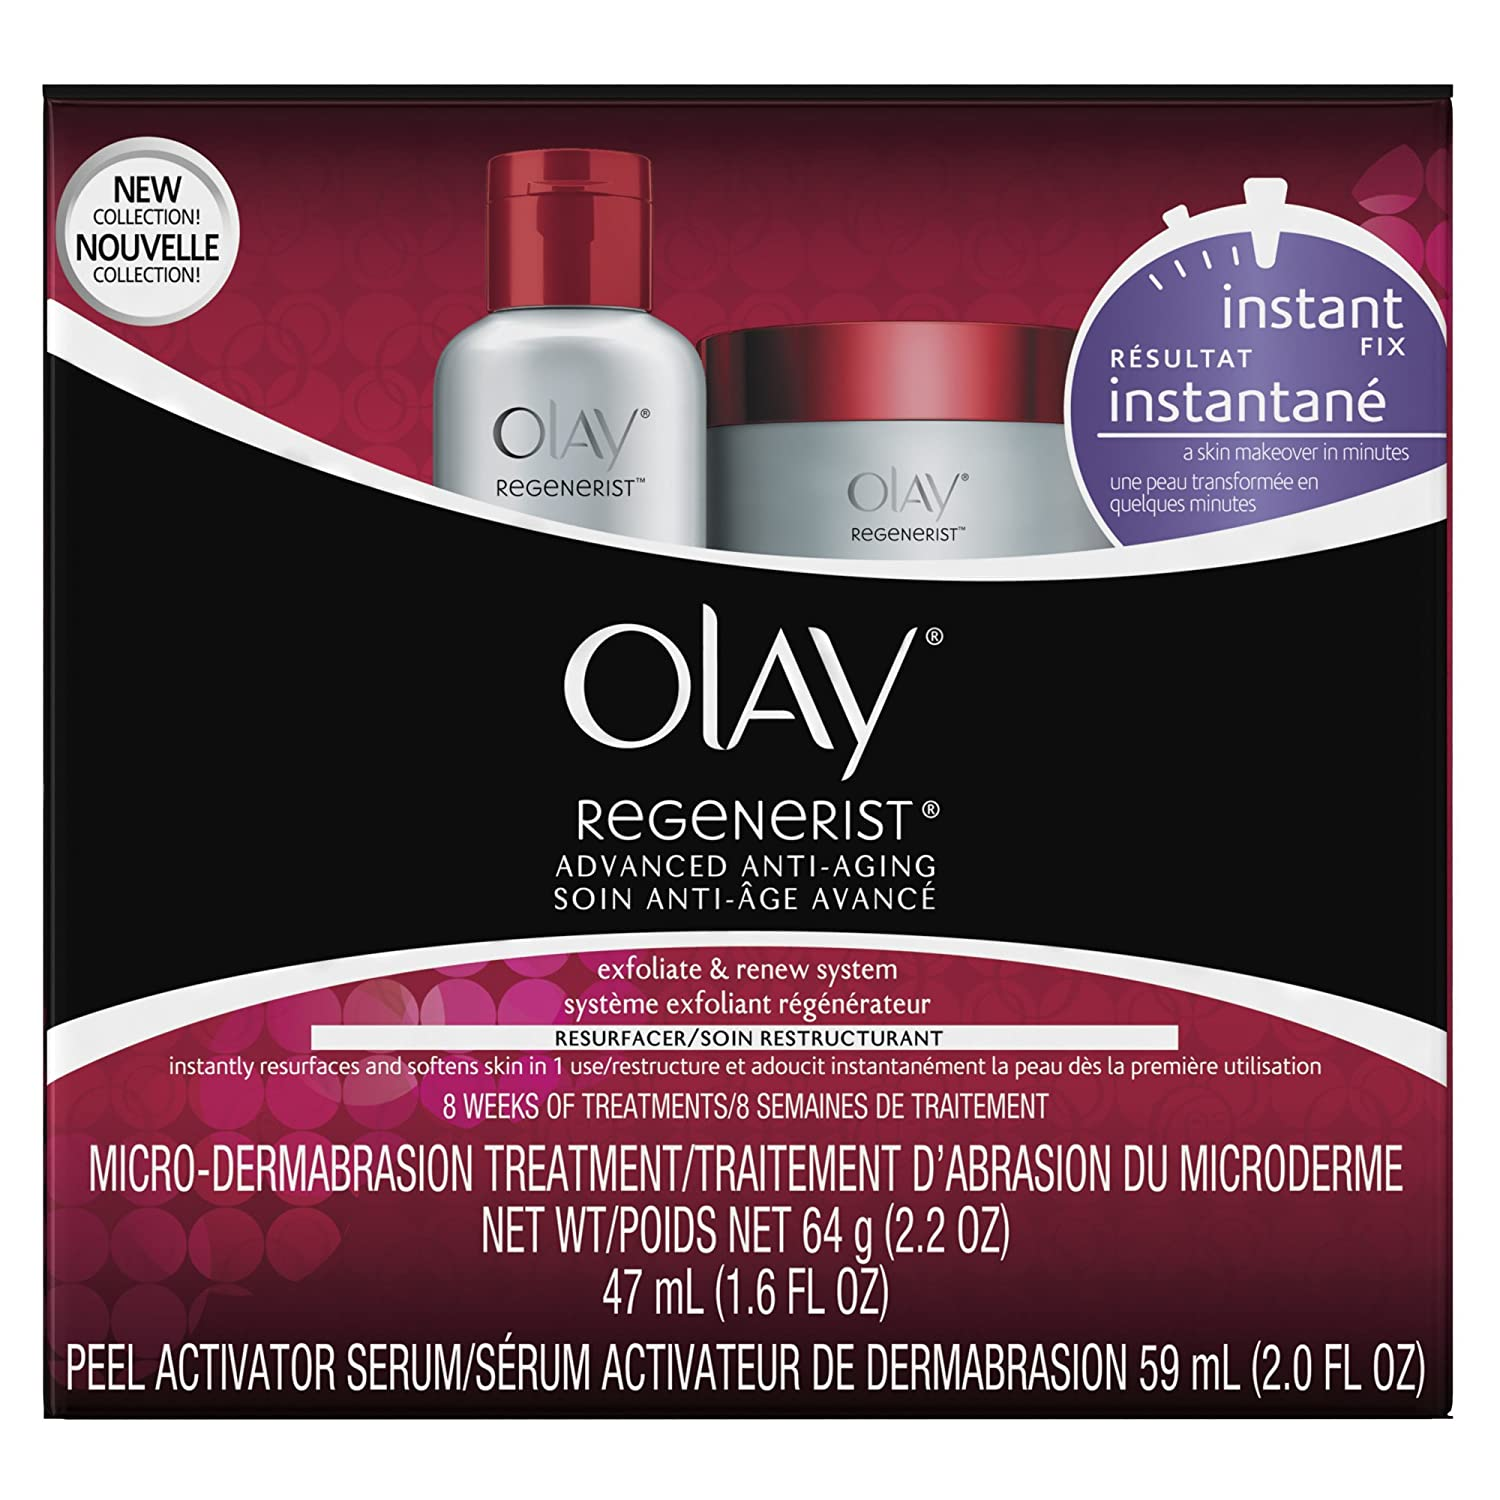 Microdermabrasion Kit by Olay Regenerist, Face Peel & Scrub for Dry Skin, Reduce Wrinkles & Fine Lines, 1 Kit: Beauty